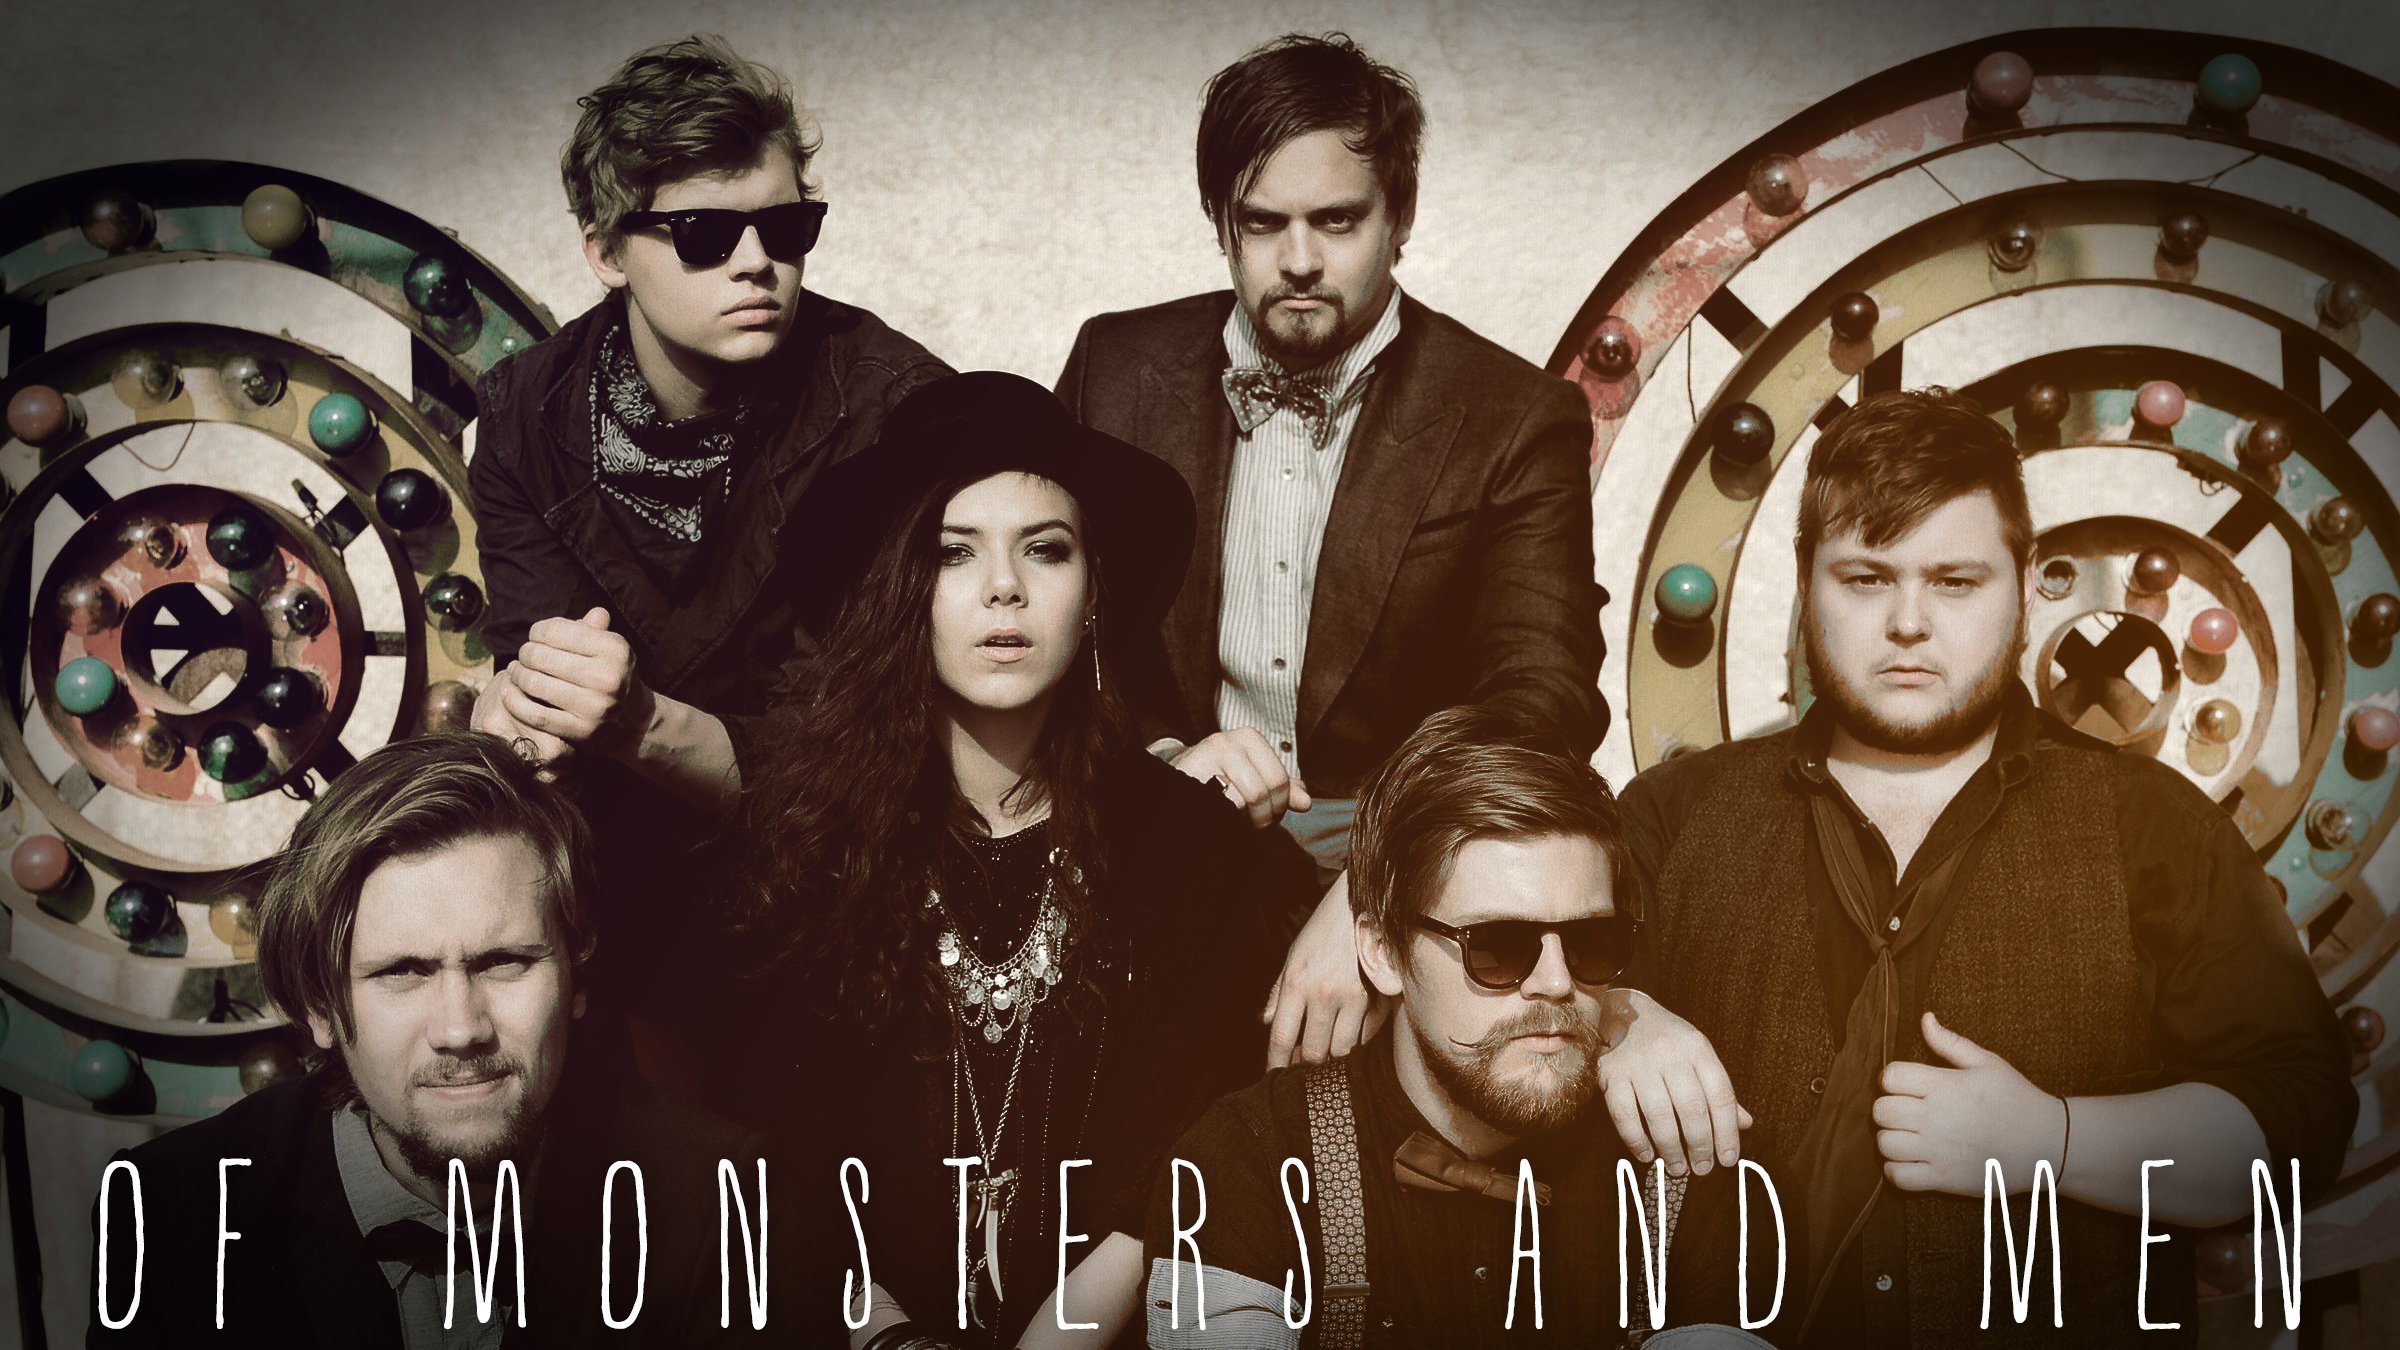 Of Monsters and Men Wallpaper by theeverydayghost on DeviantArt